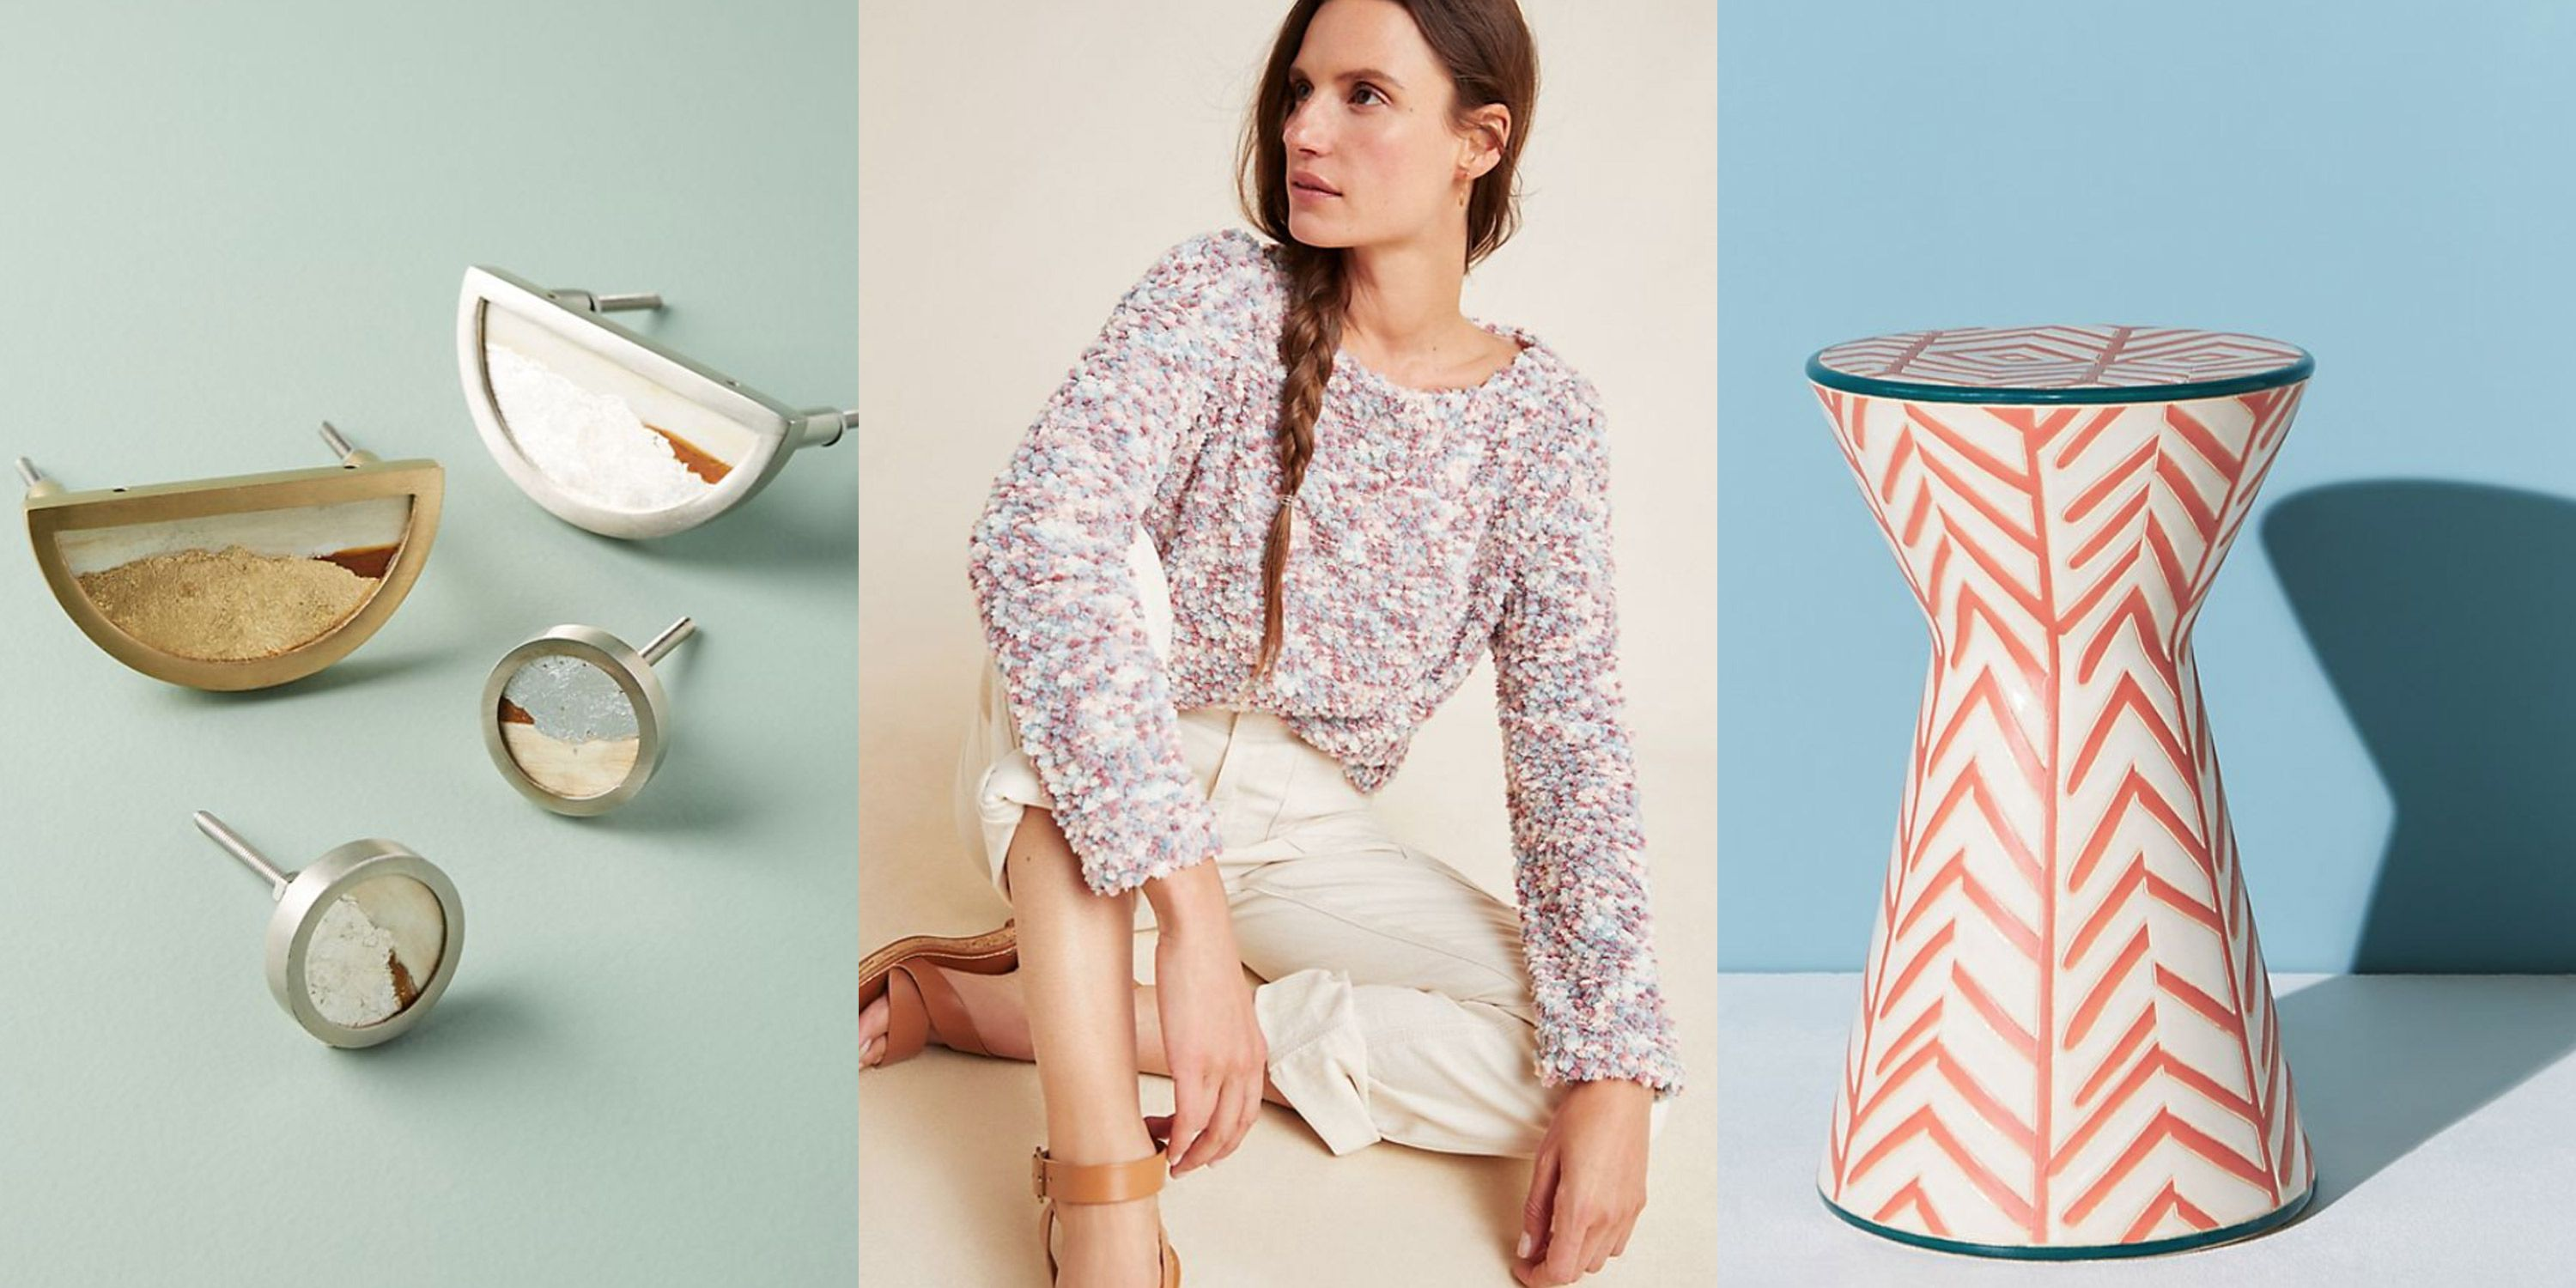 Anthropologie Is Having a Sale on Its Sale Section